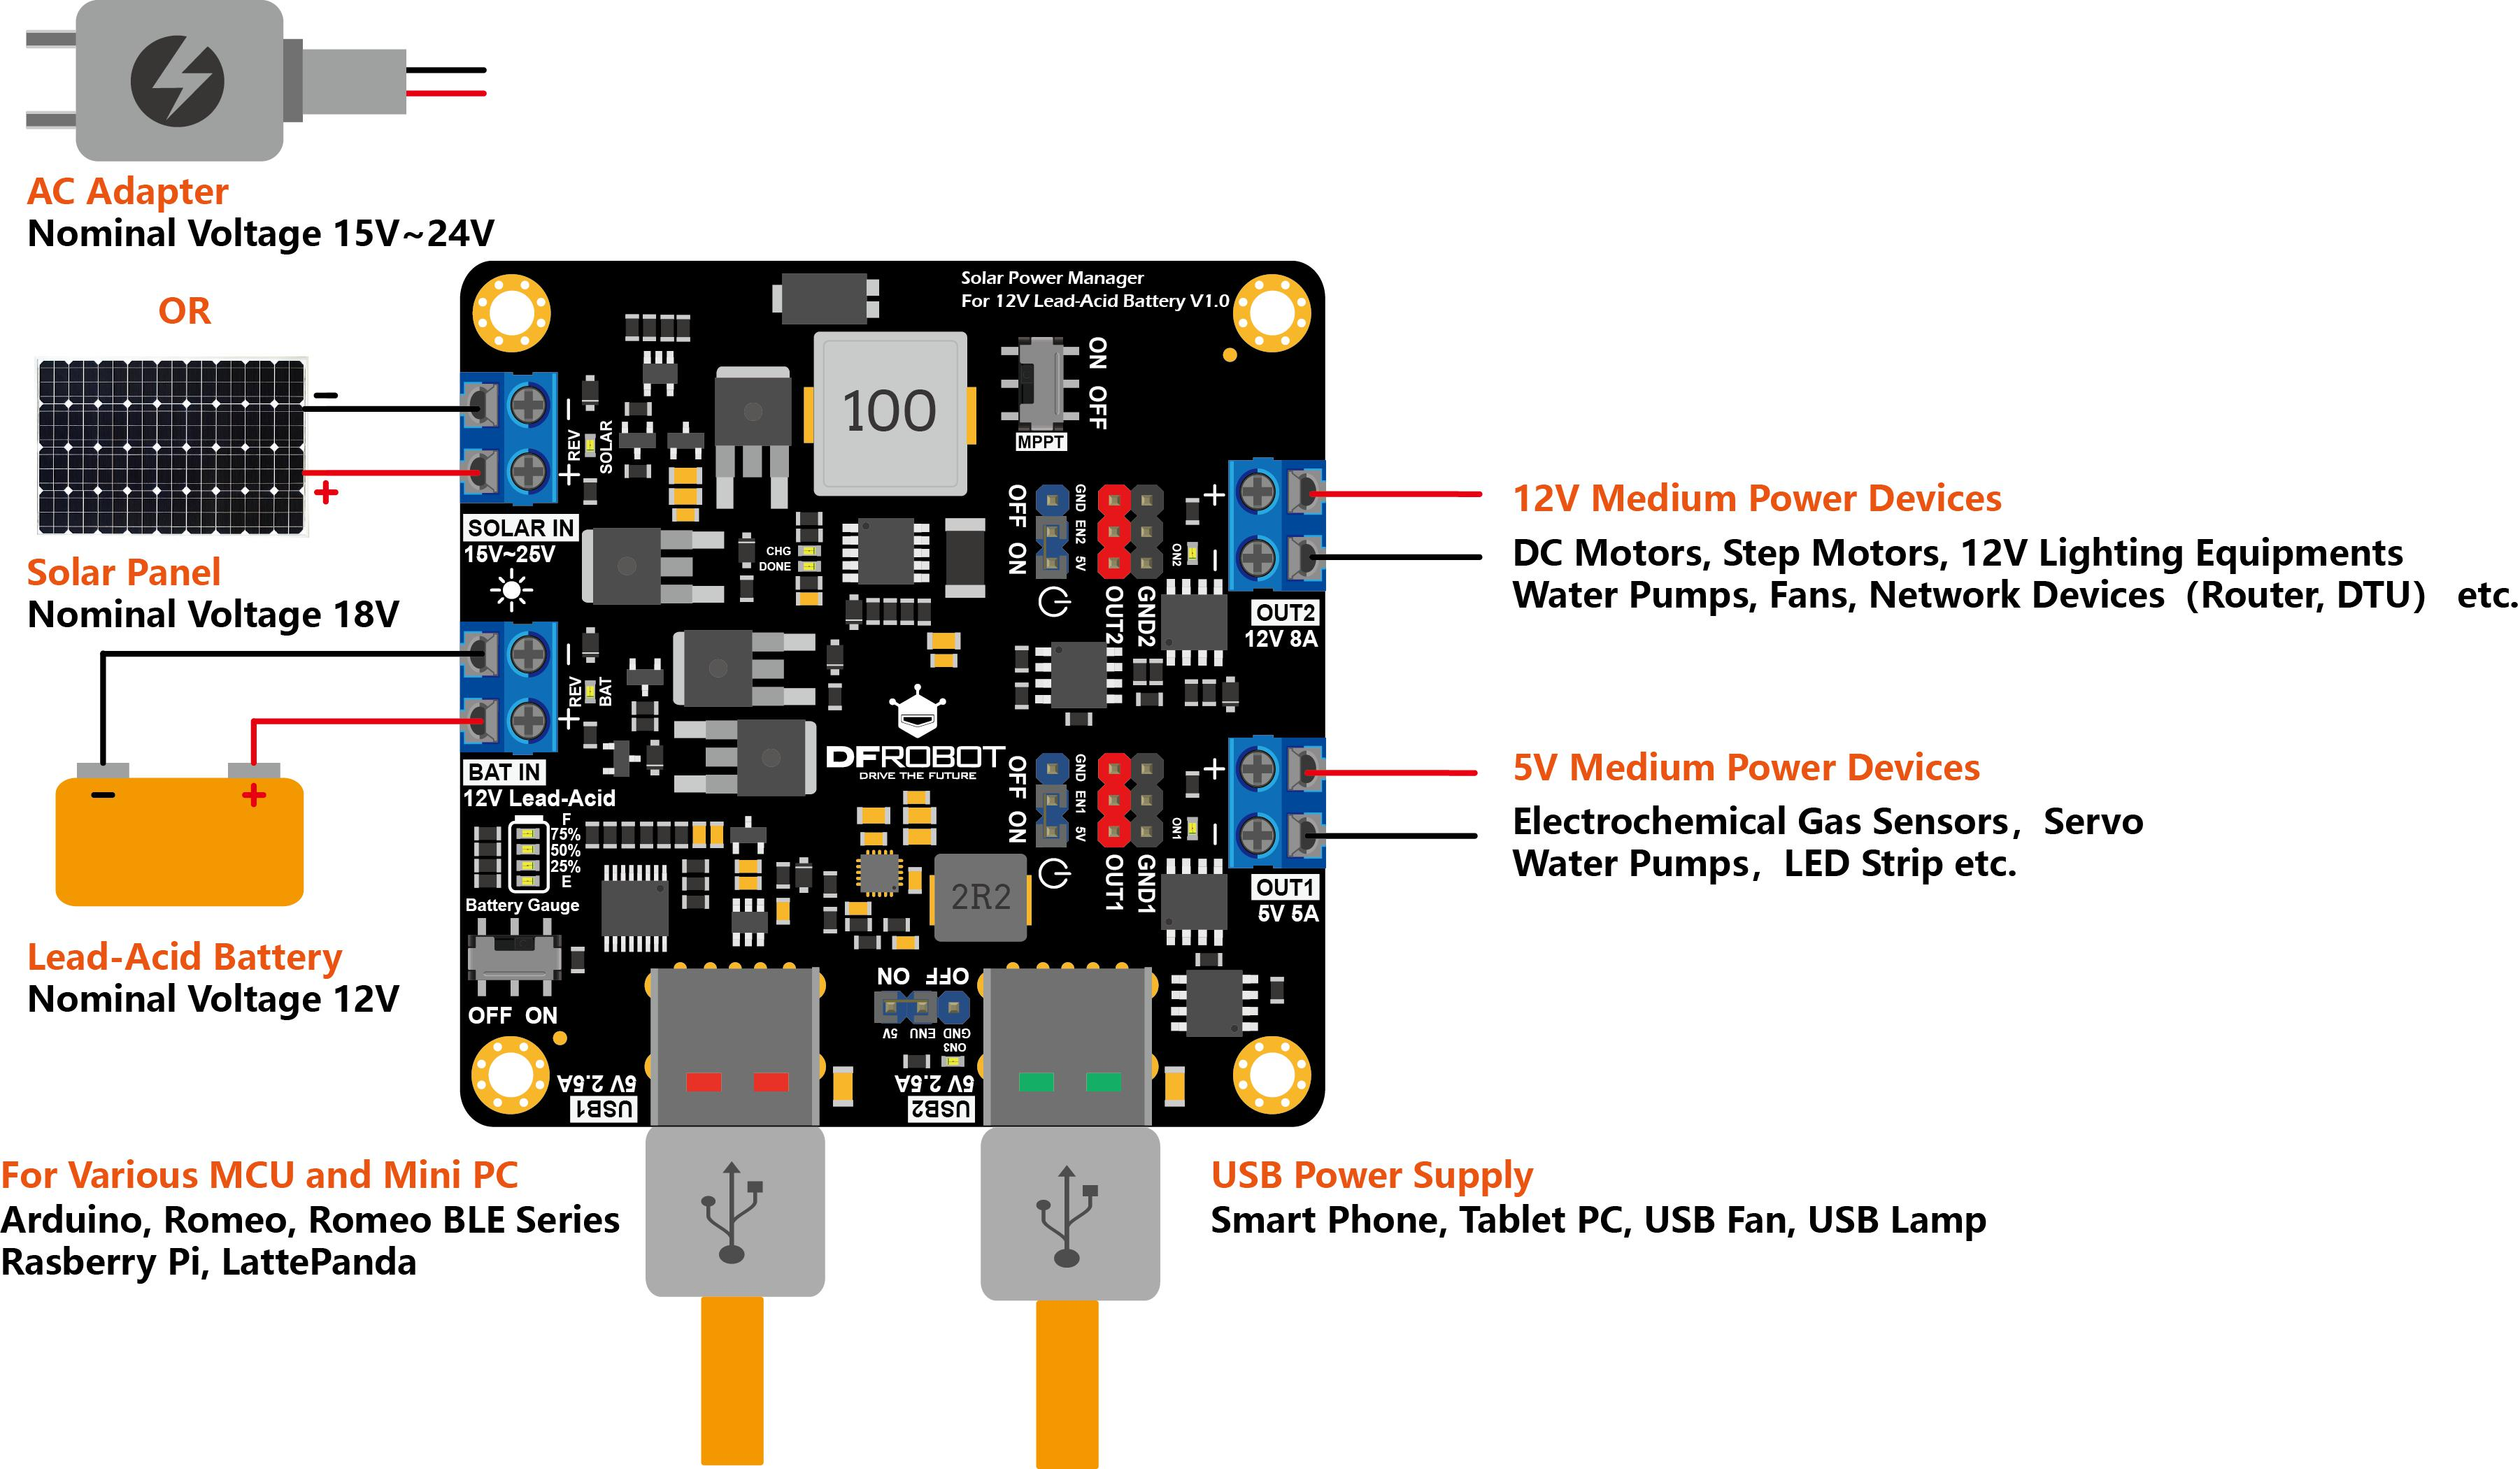 Solar Power Manager For 12V Lead-Acid Battery Board-Build a solar powered system